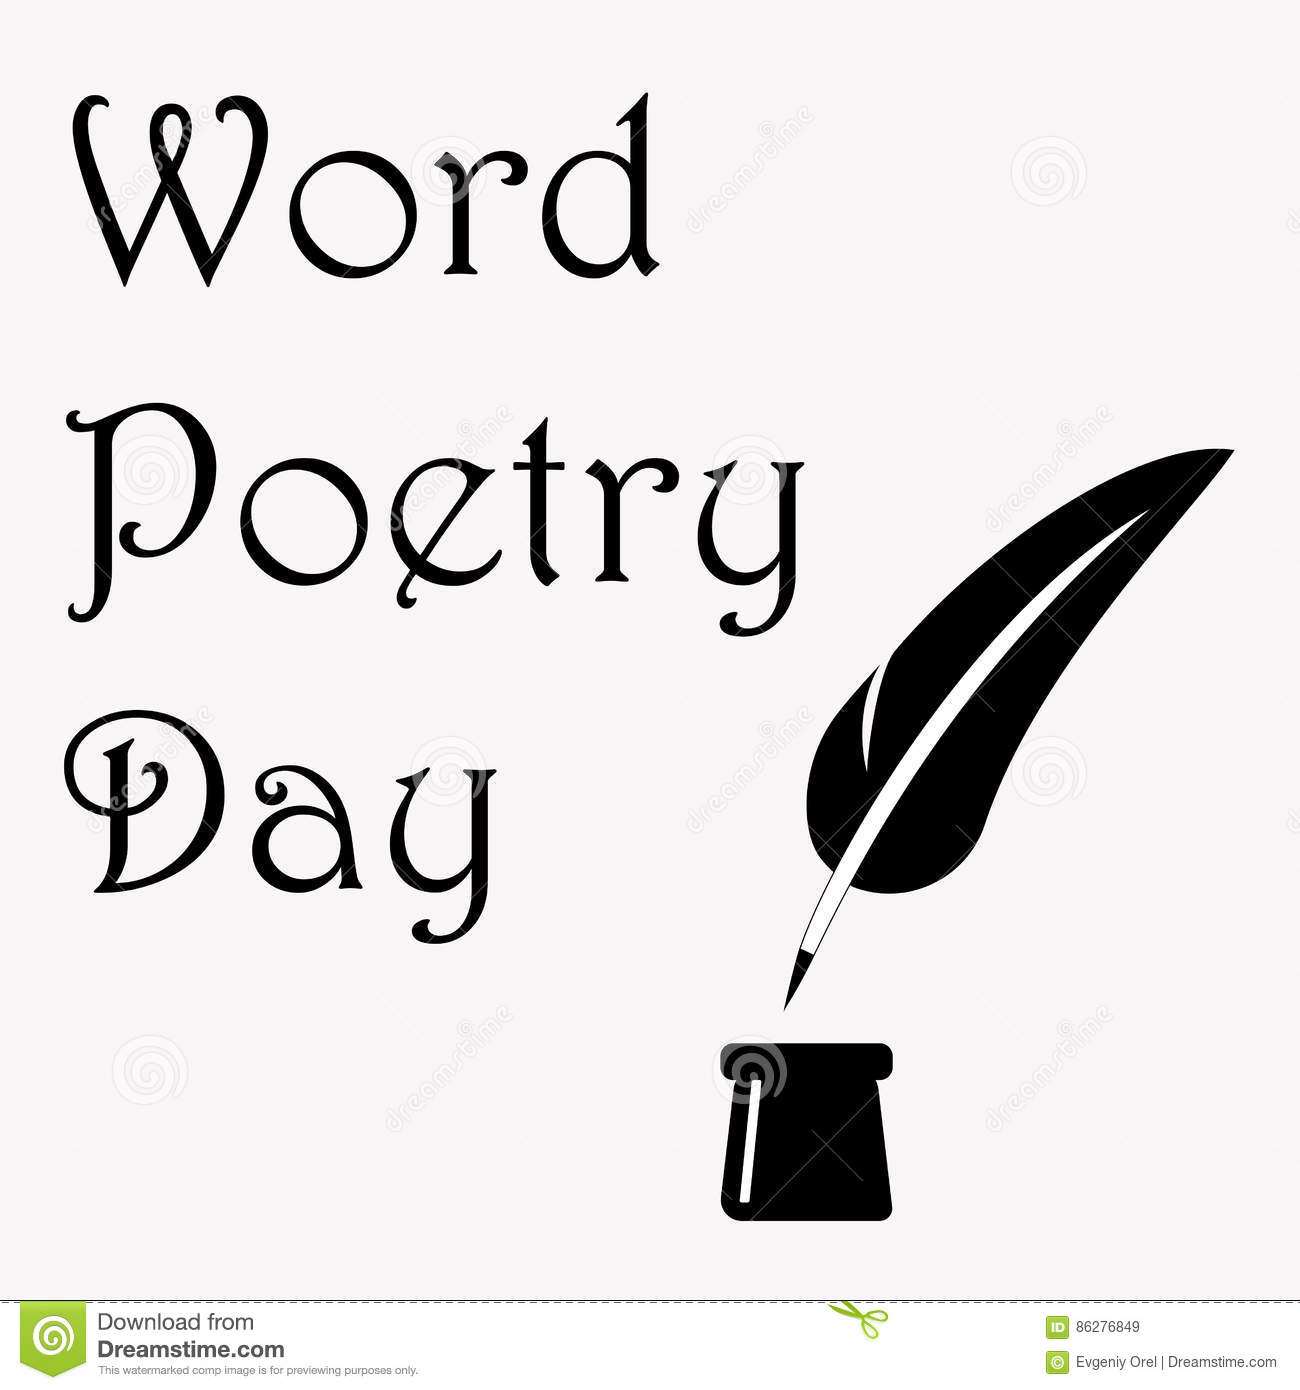 T shirt black and white designs - World Poetry Day Illustration With Ink Pot And Feather Made In Black And White Design For Card Print Or T Shirt